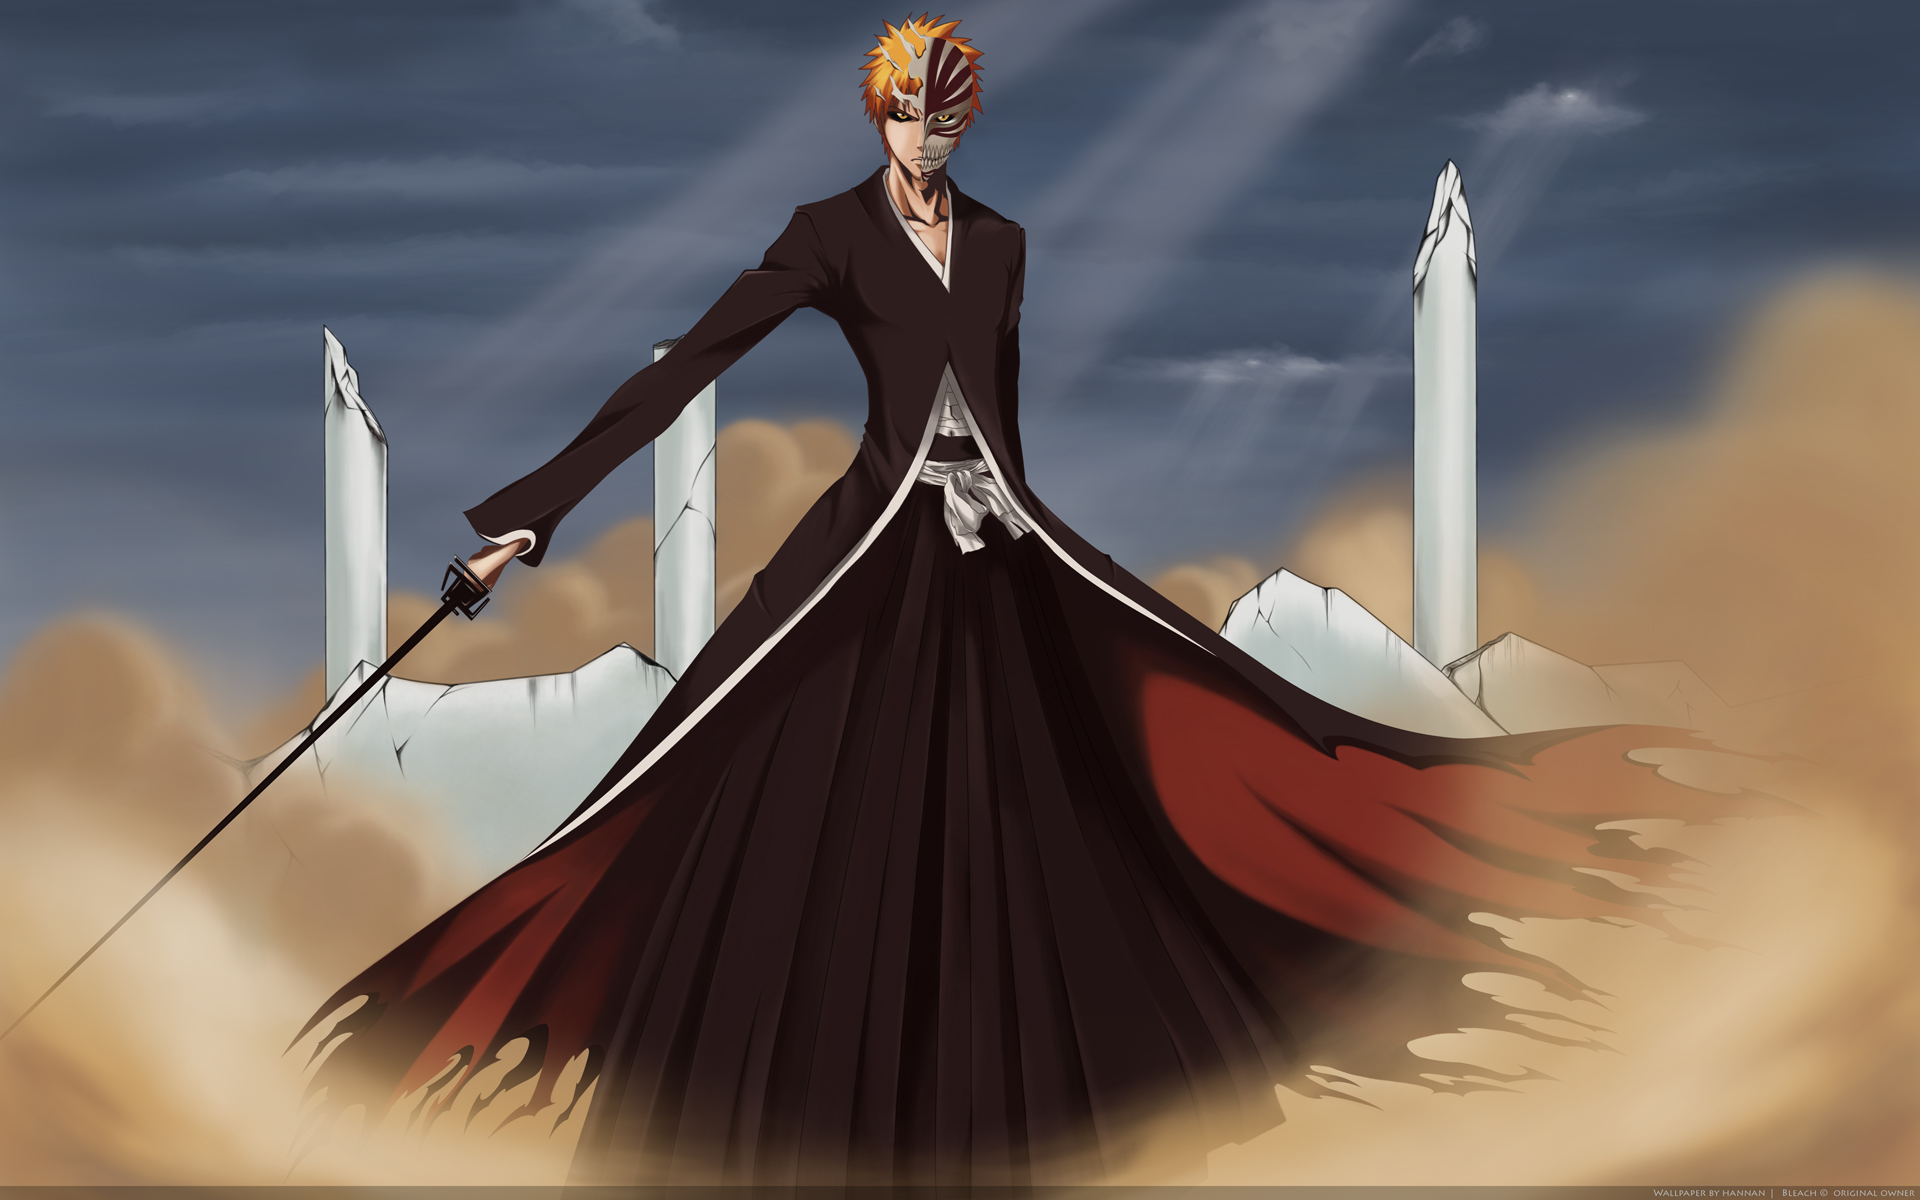 Bleach Anime Wallpaper For Phone 4542 Wallpapers Coolz HD 1920x1200